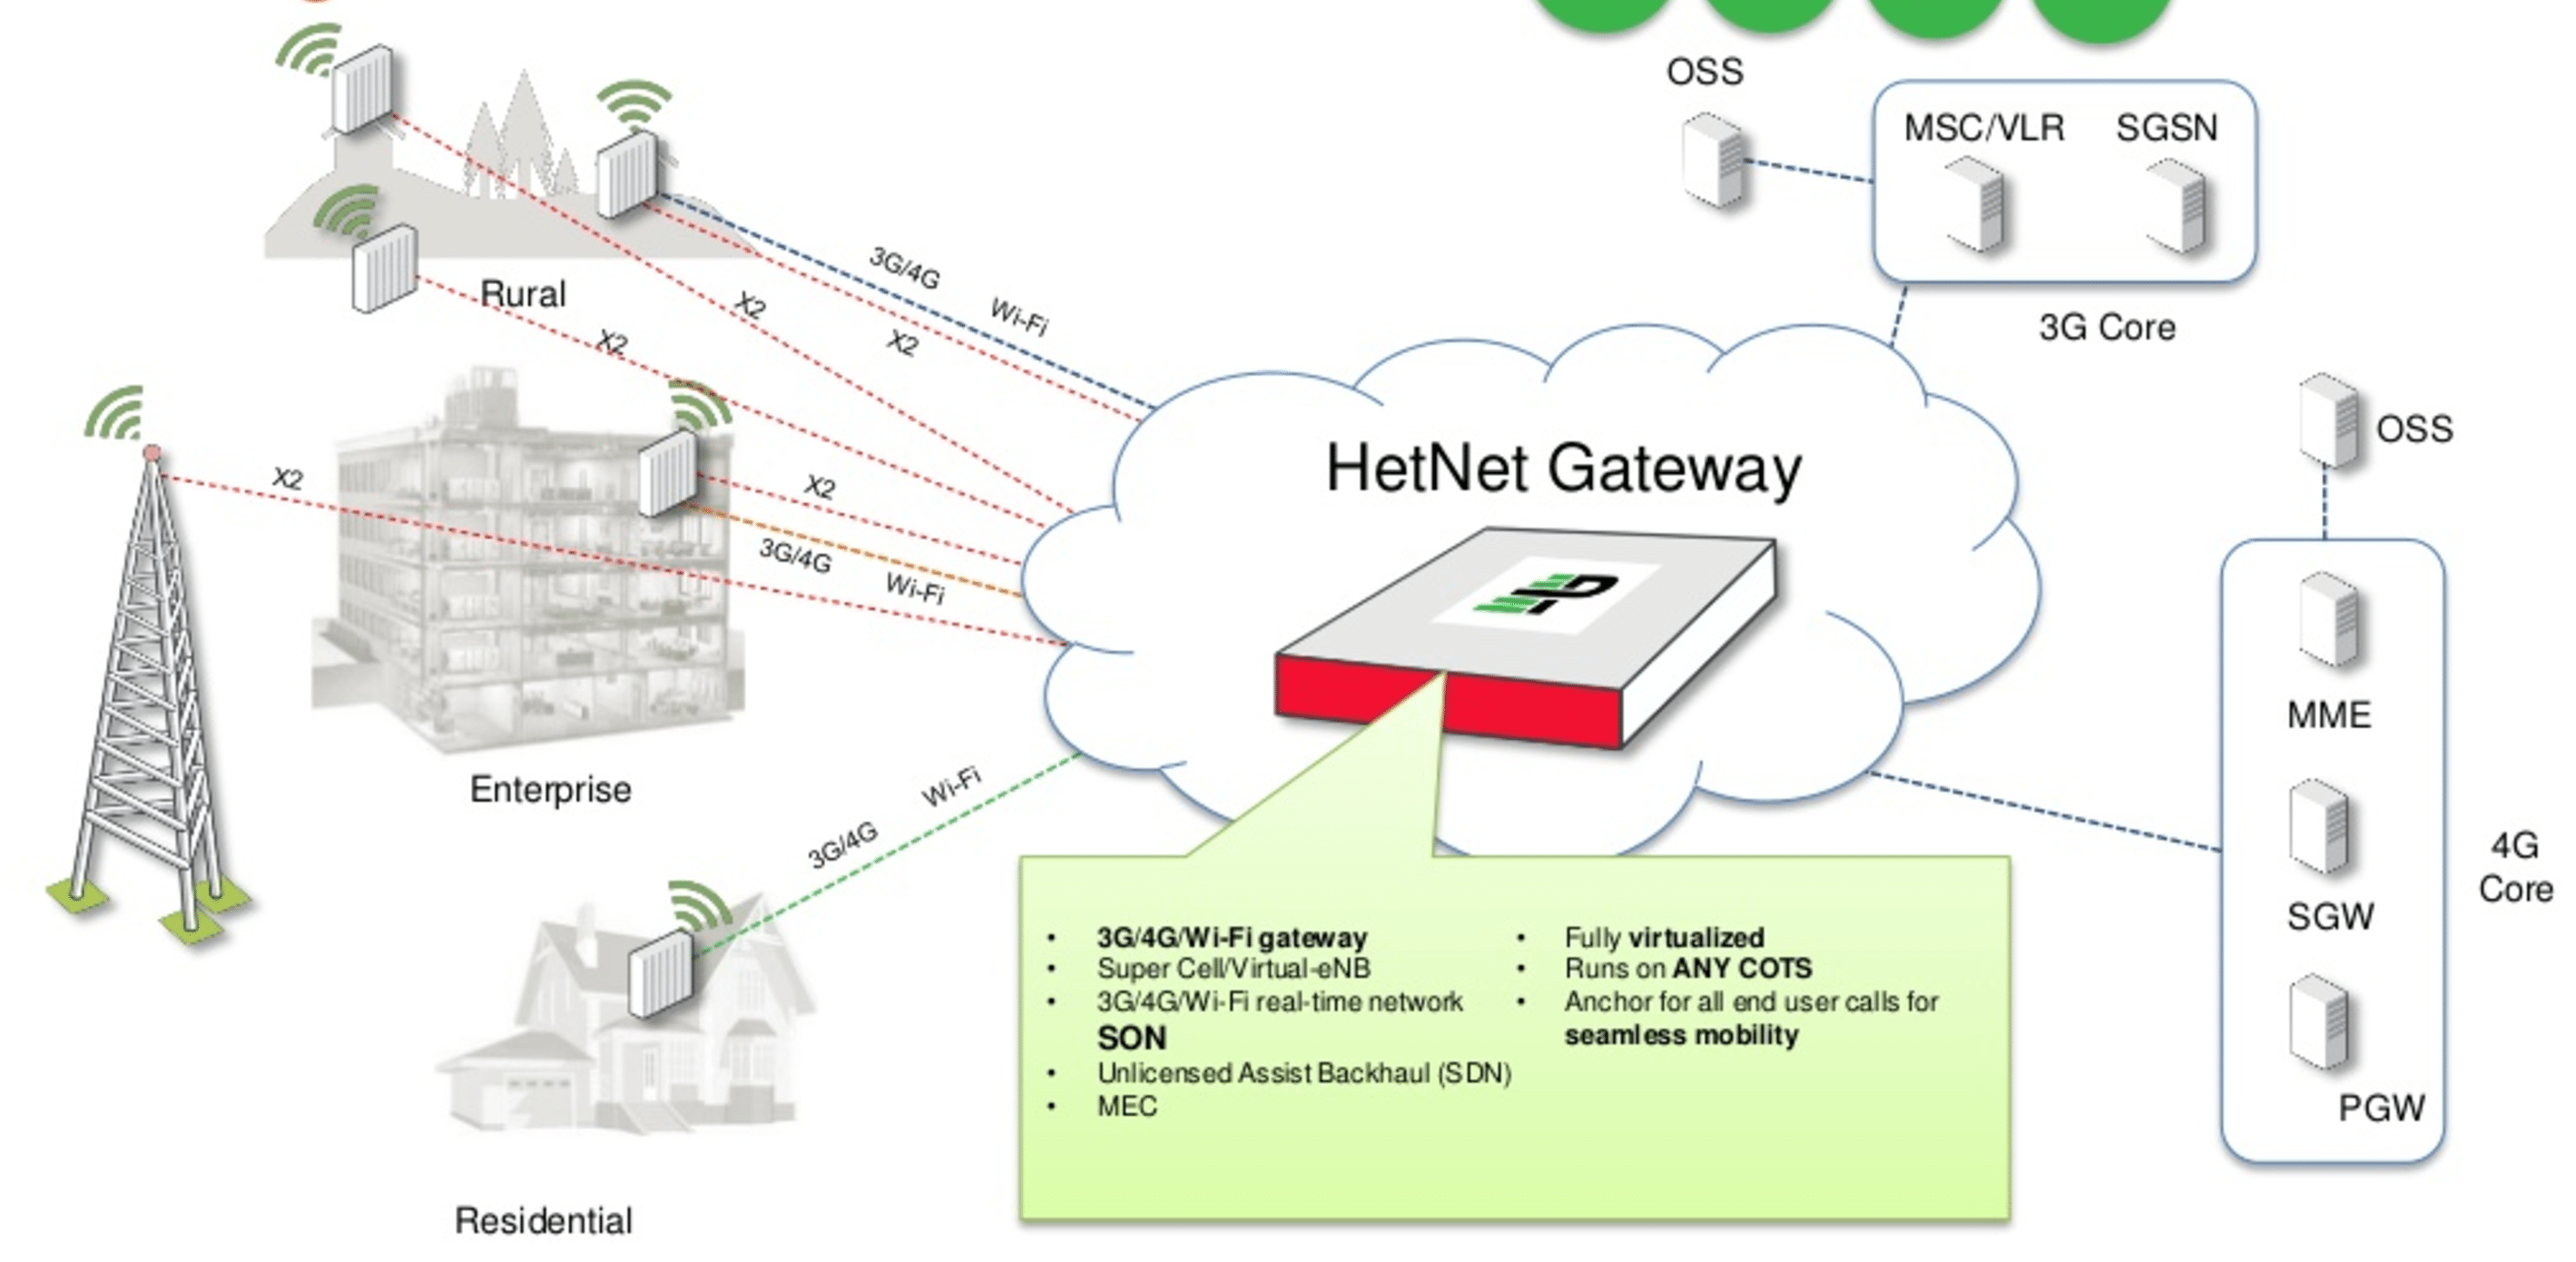 3g Access Network Diagram